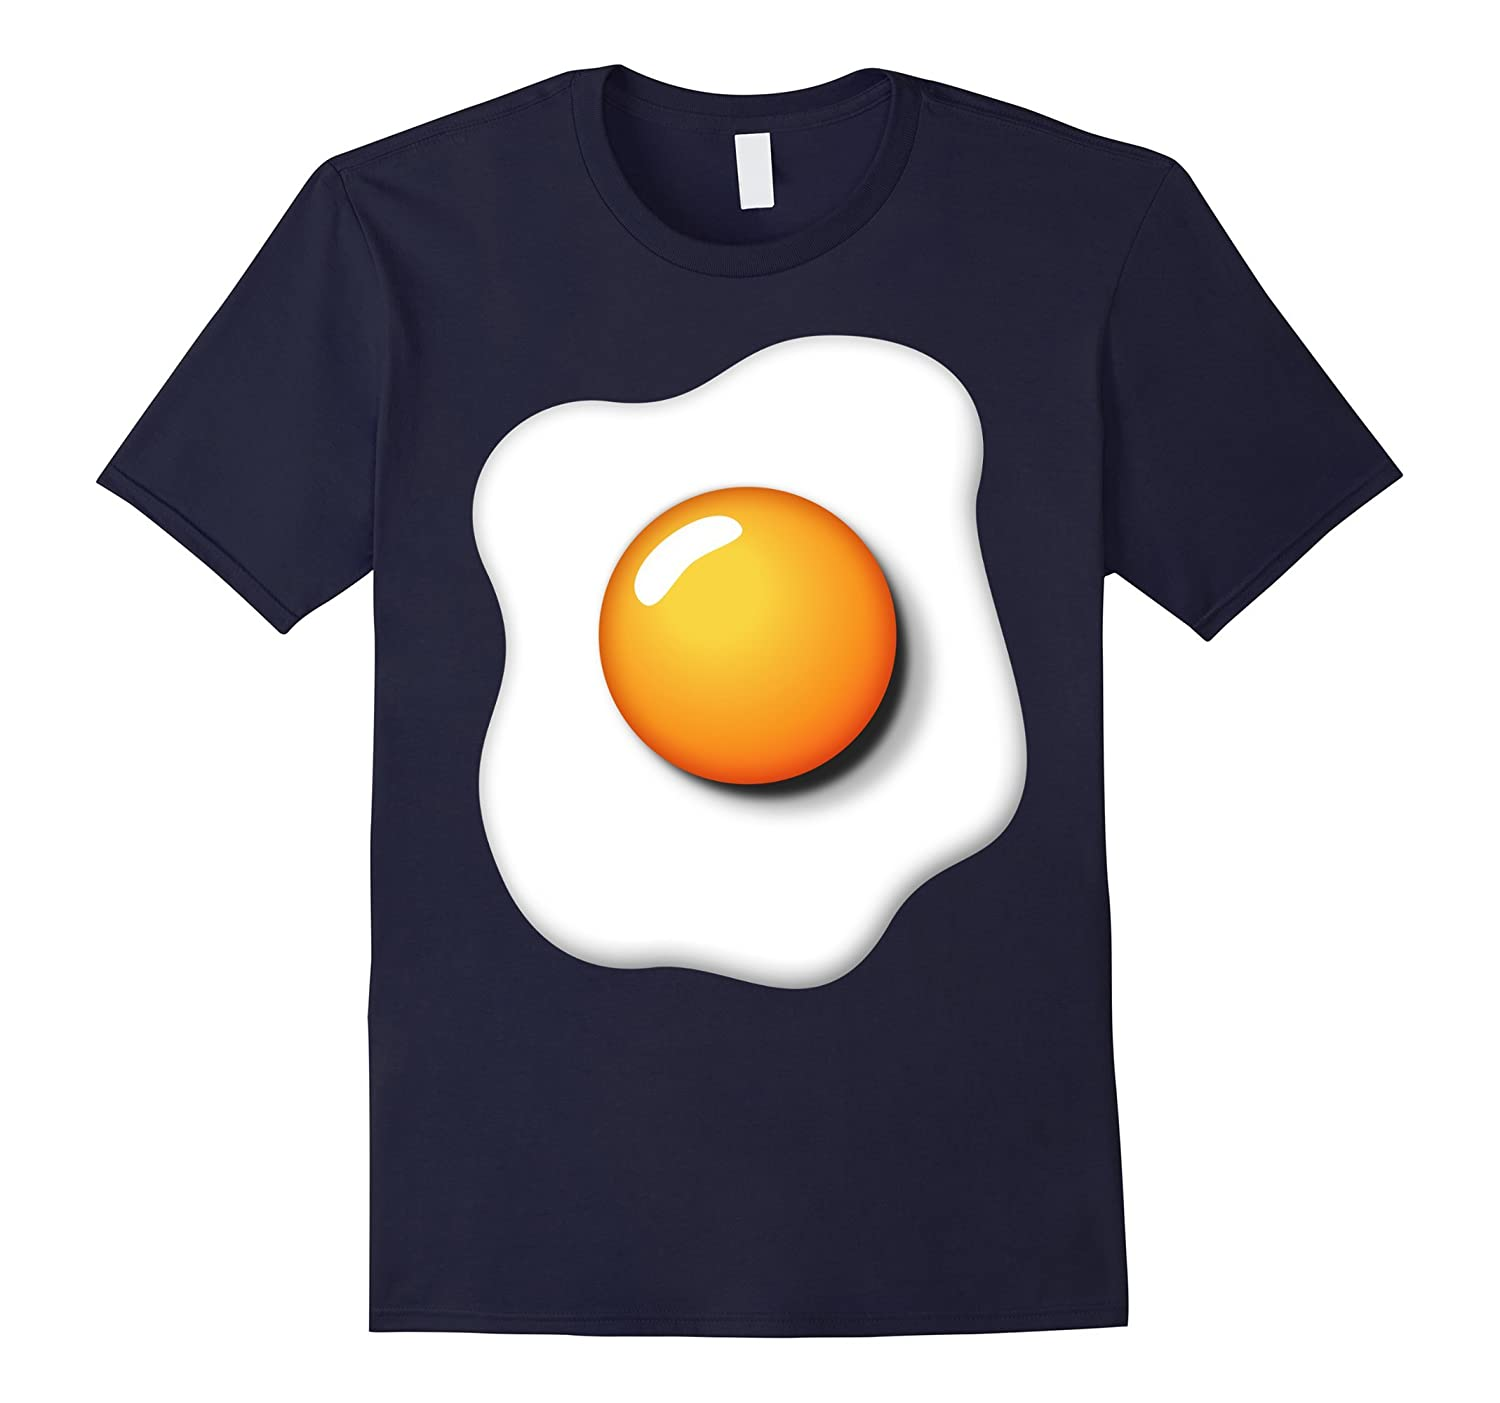 Funny Fried Egg Shirt DIY Halloween Costume Ideas Egg Yolk-FL